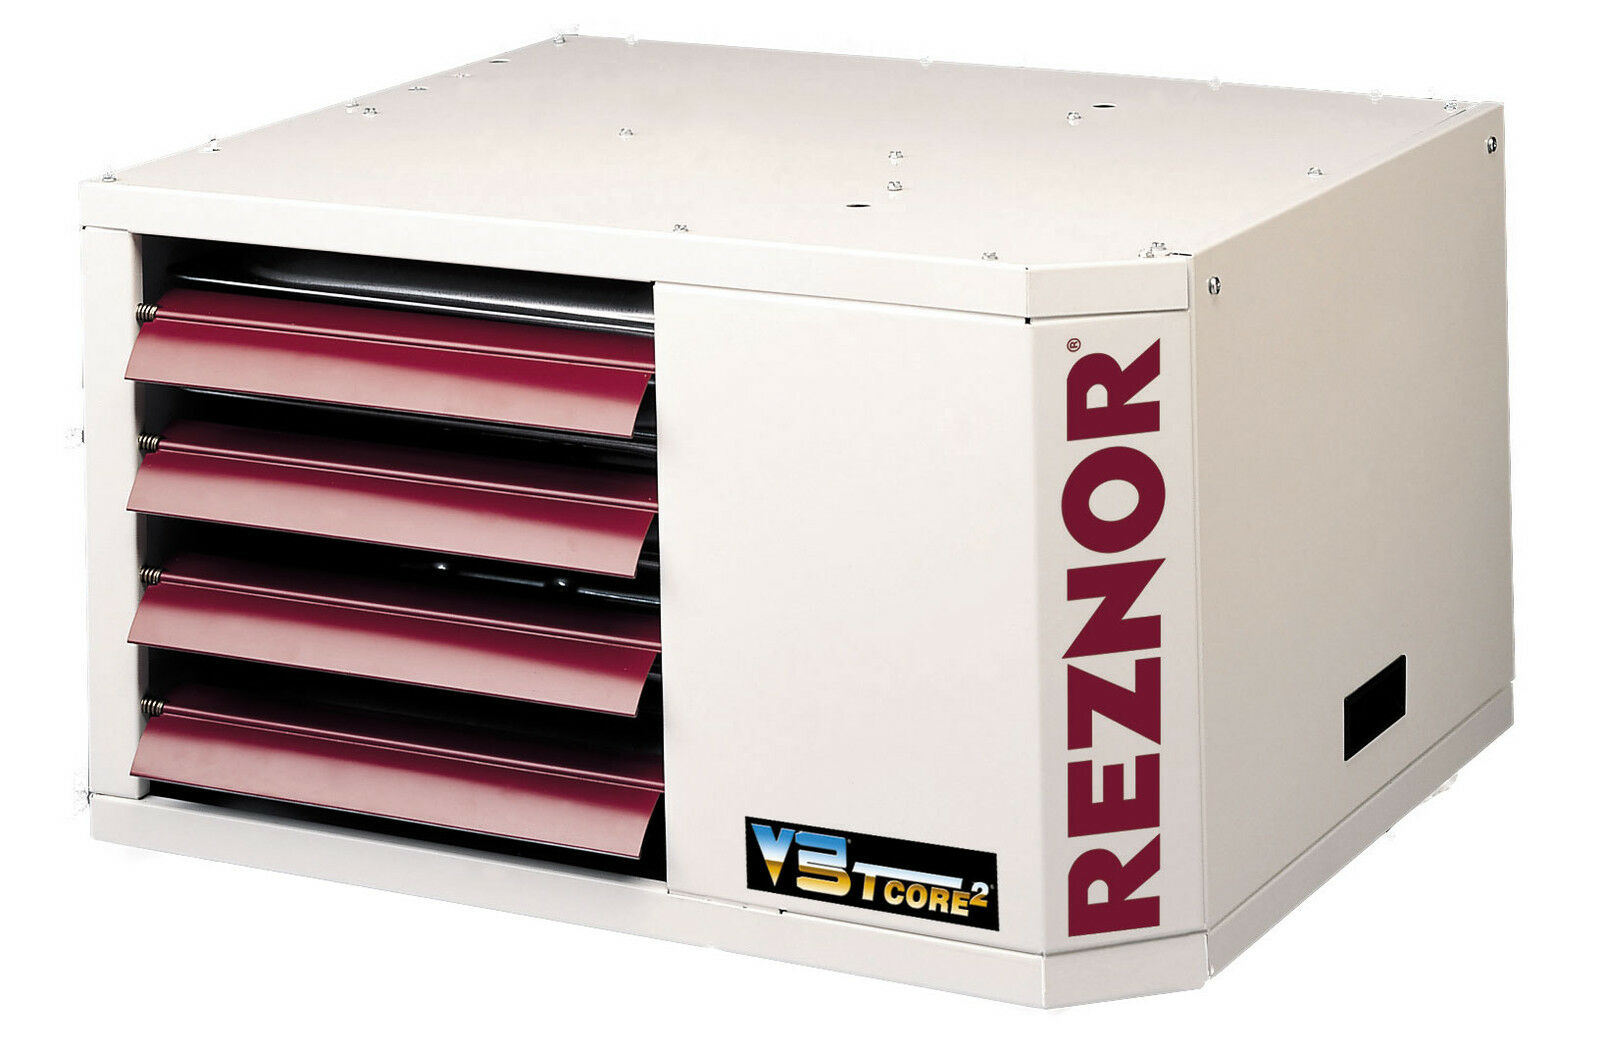 Reznor Udap 400 400000 Btu V3 Power Vented Gas Fired Unit Heater Waste Oil Furnace Thermostat Wiring 1 Of 1free Shipping